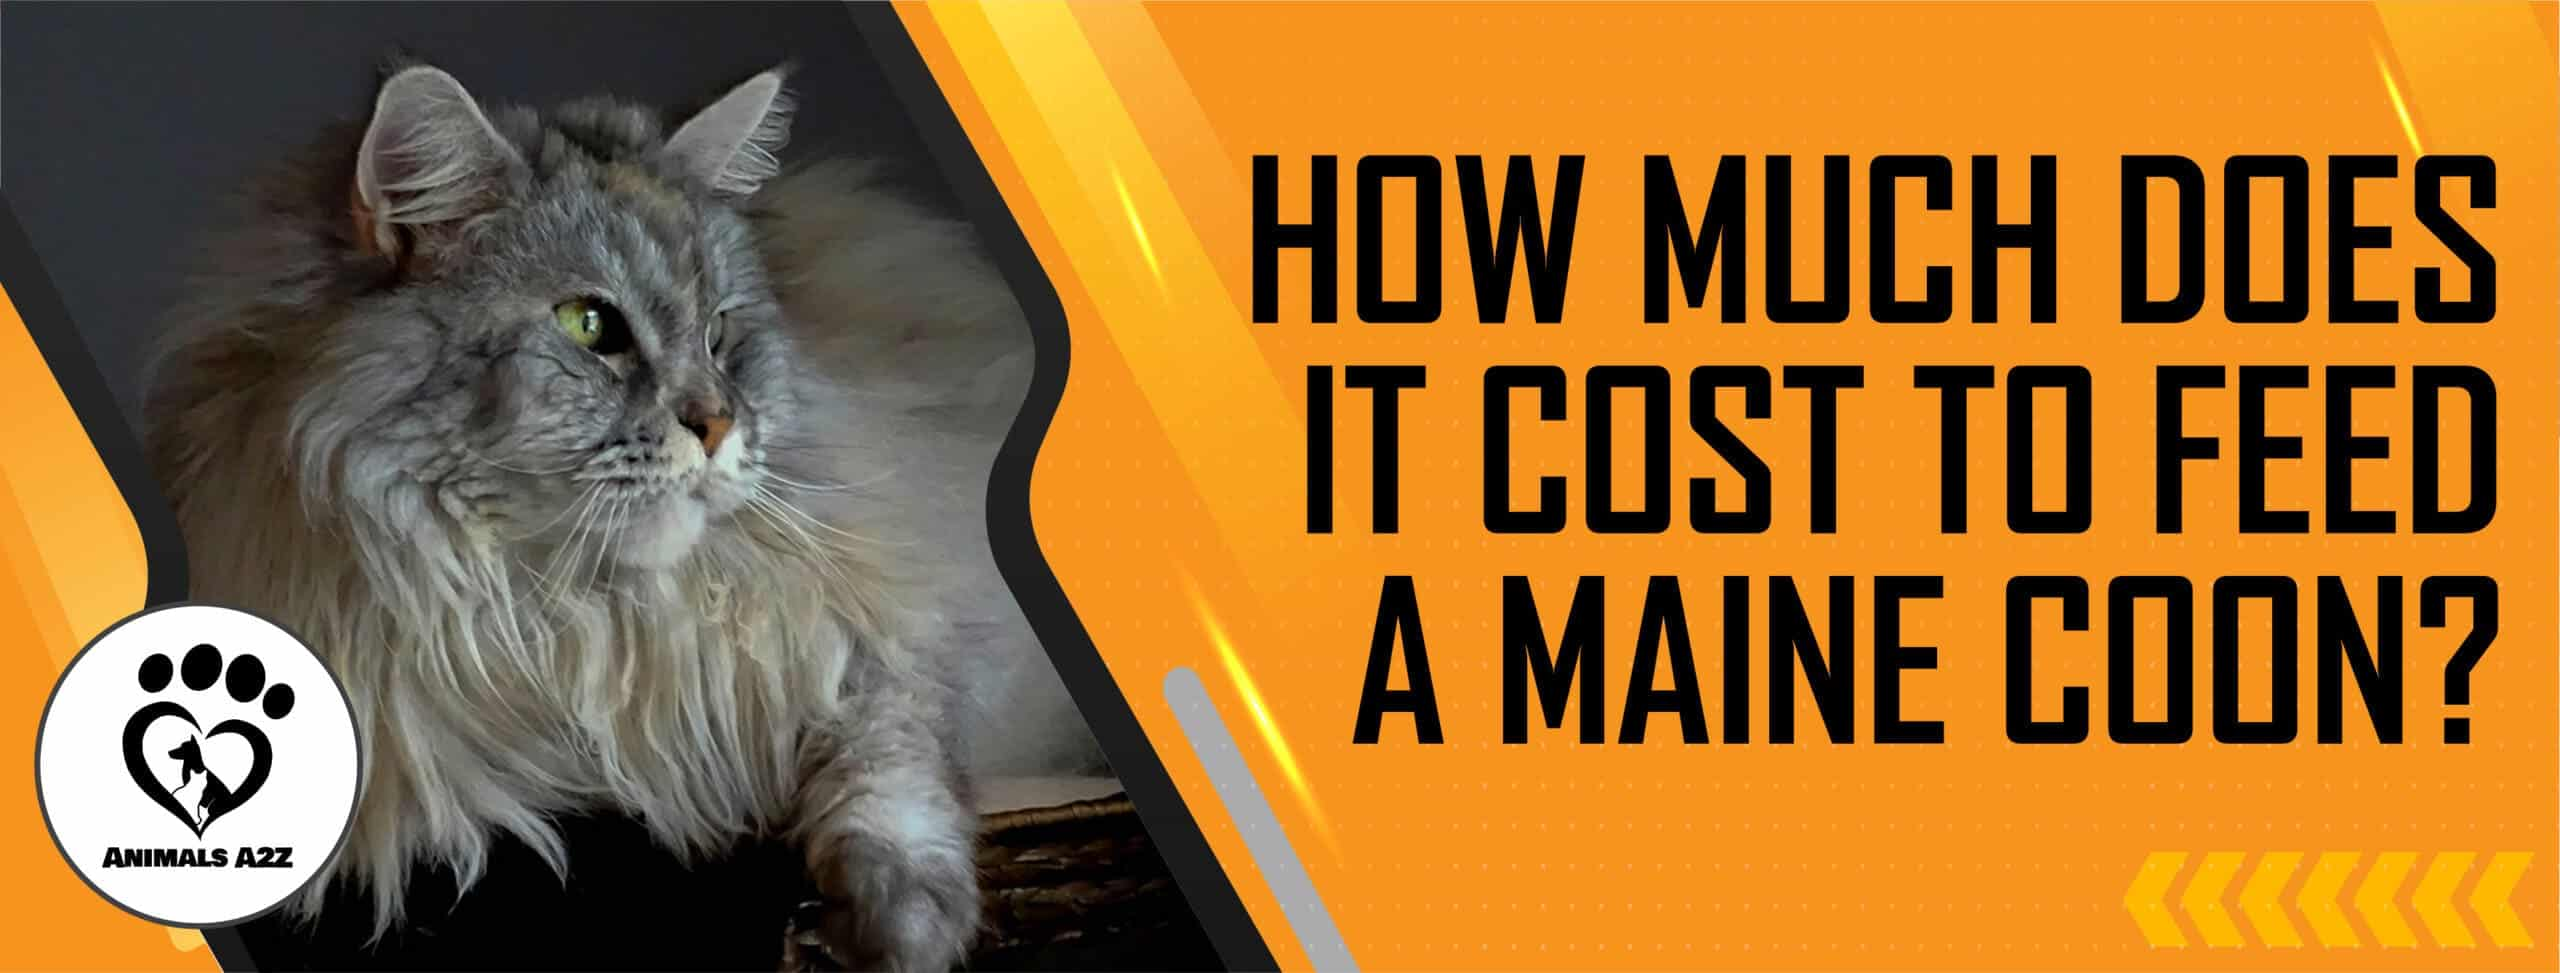 How much does it cost to feed a Maine coon?